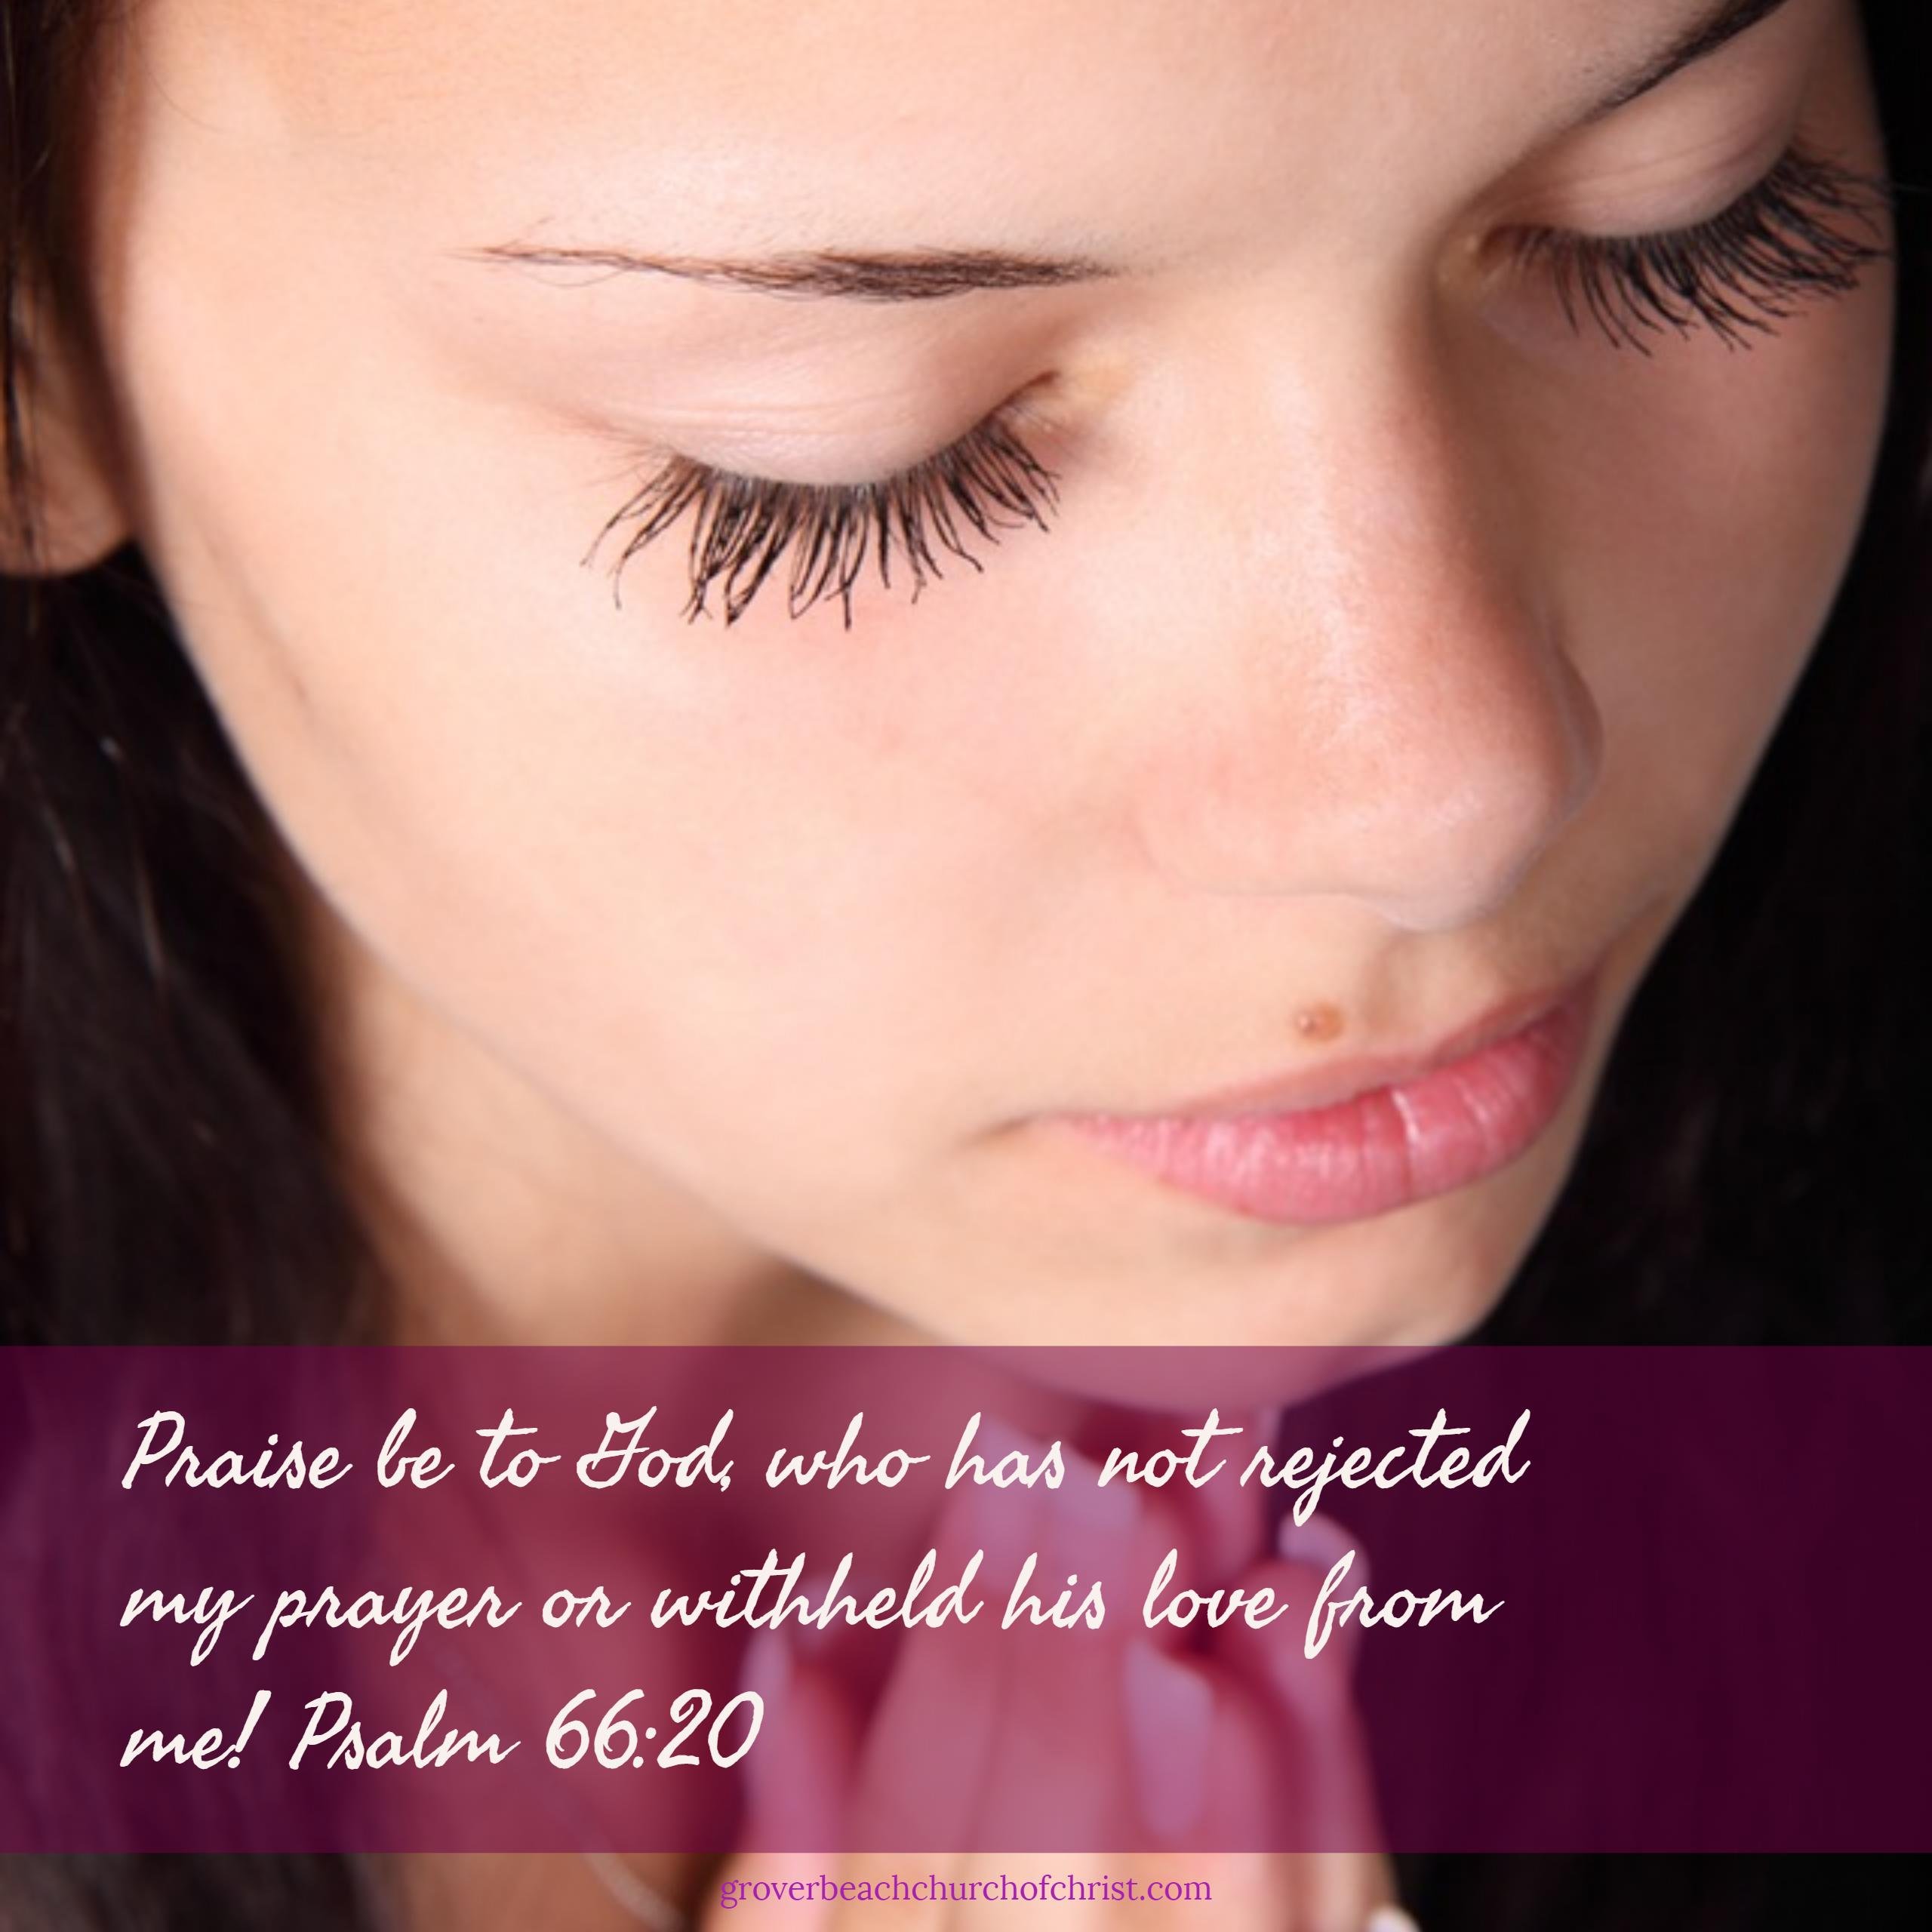 psalm-66-20-praise-be-to-god-who-has-not-rejected